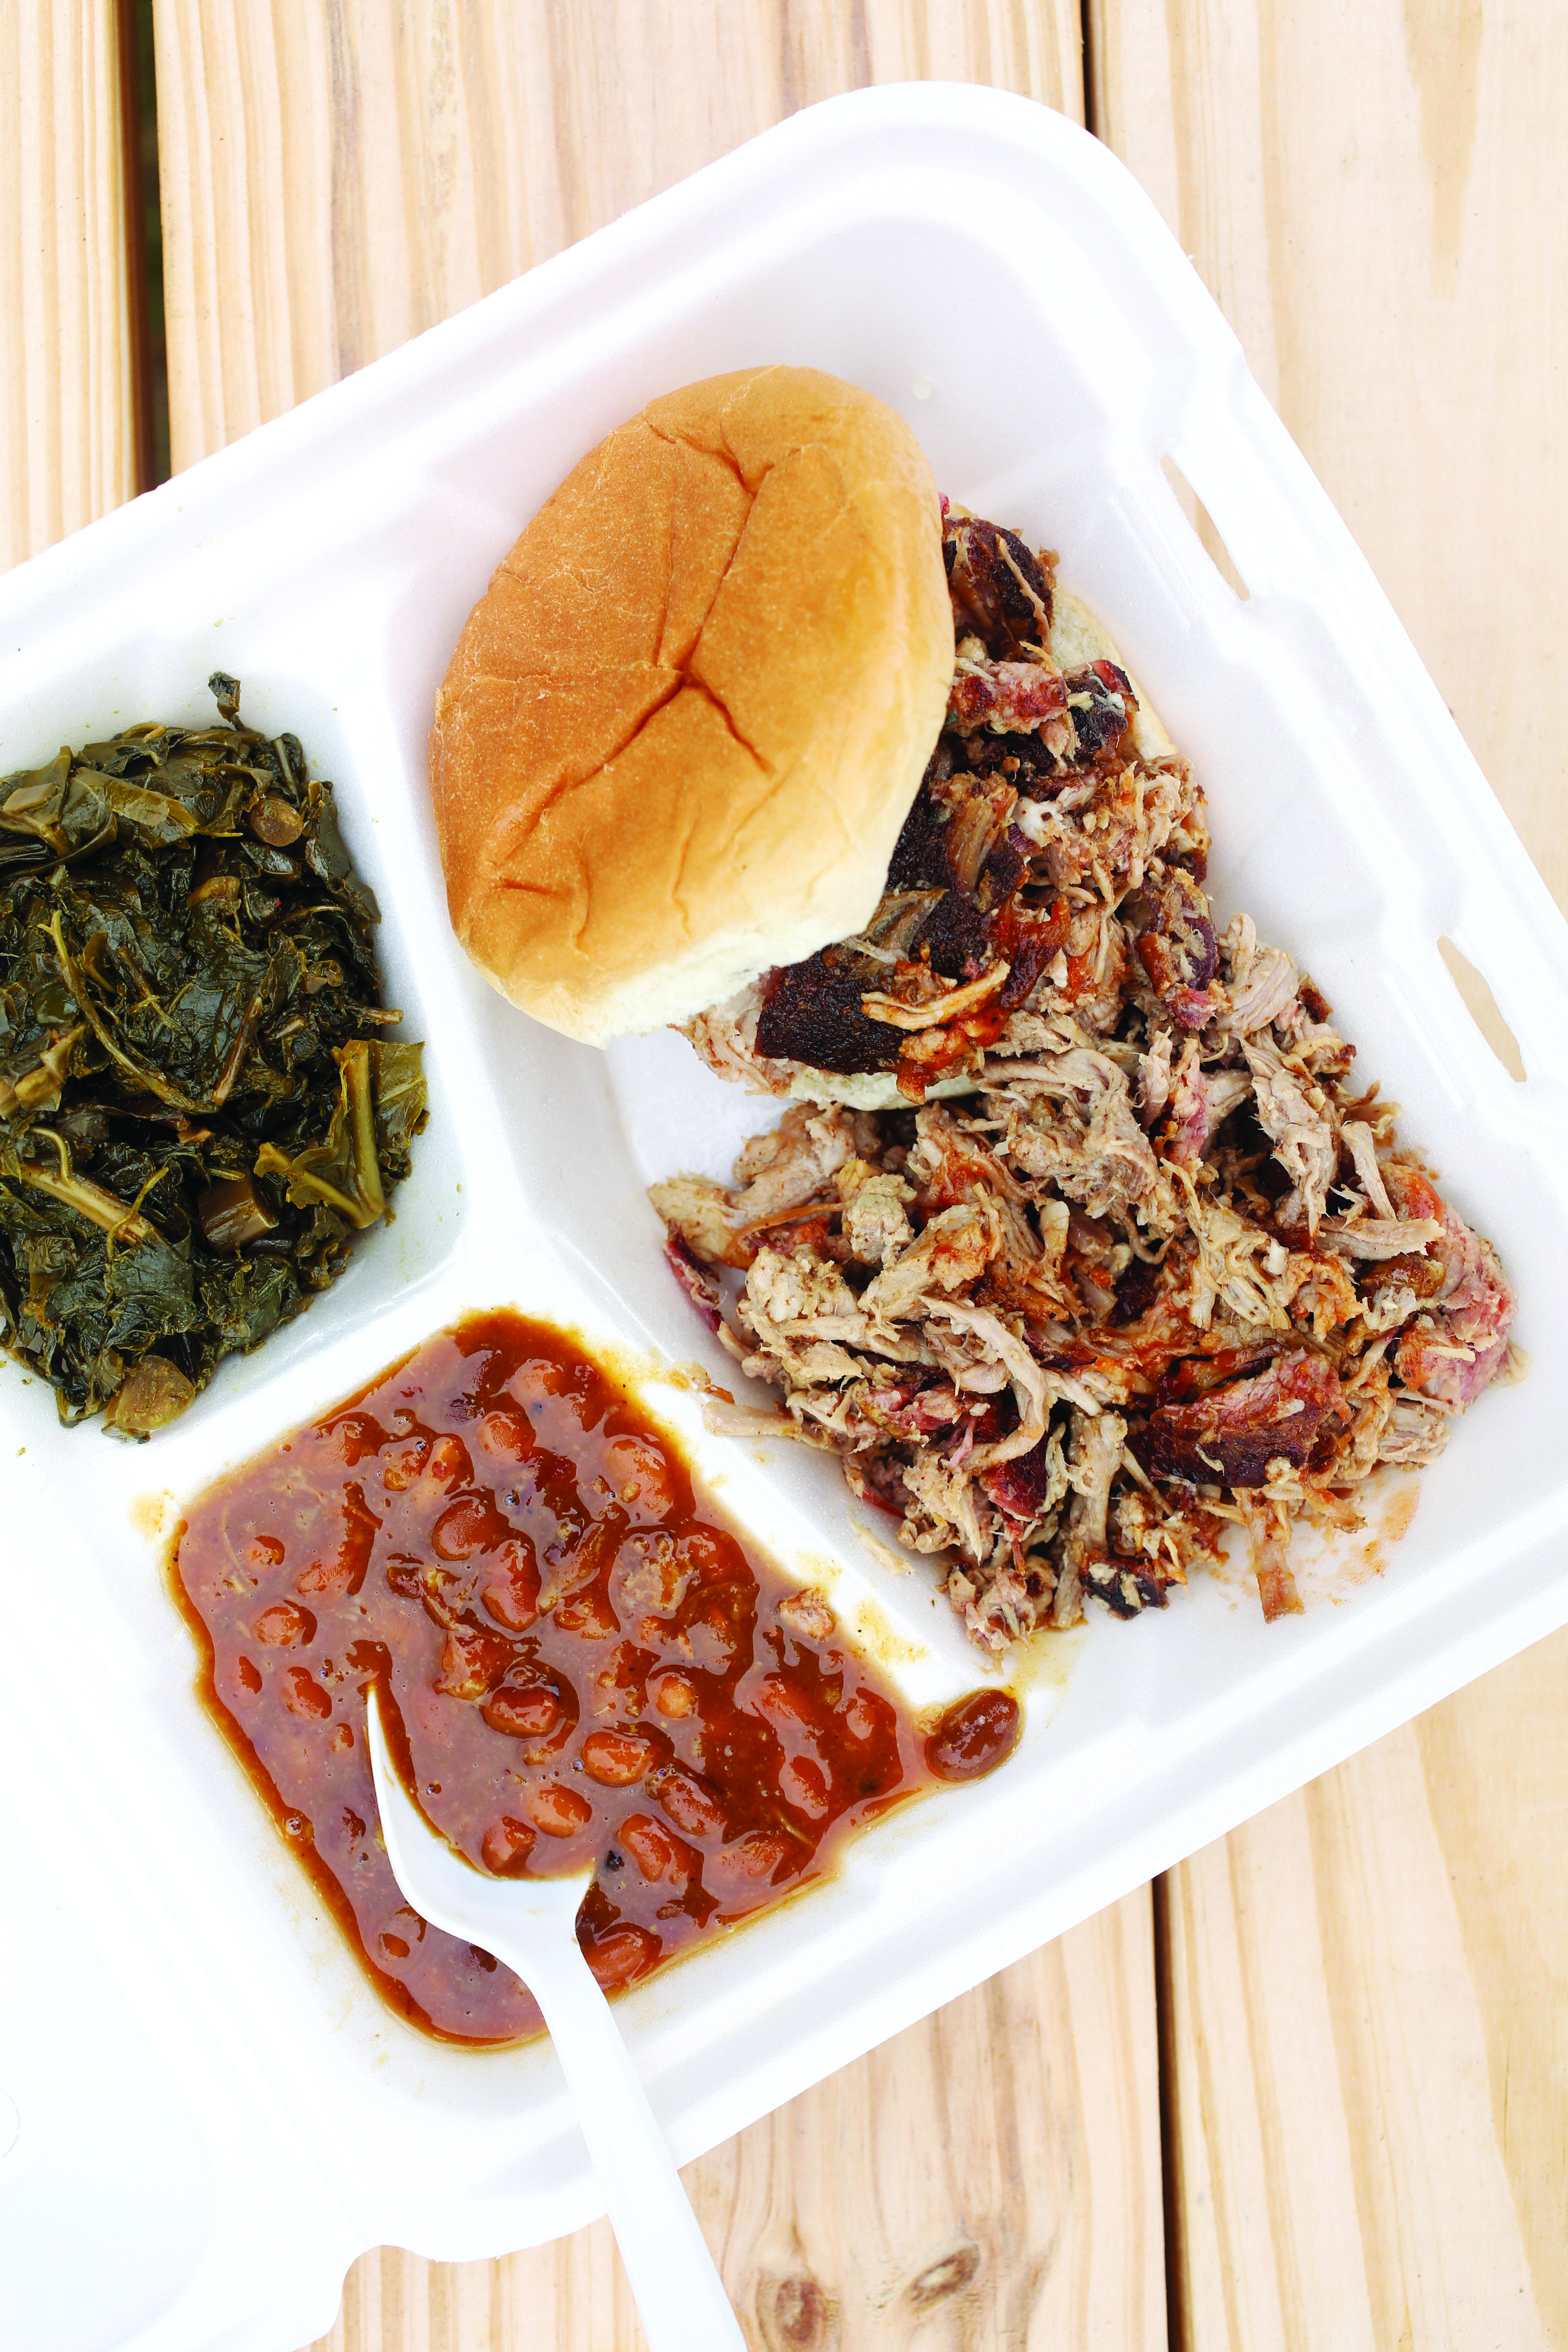 Big Mike S Barbecue Our State Carolina Bbq Sauce Tasty Dishes Gas Grill Reviews